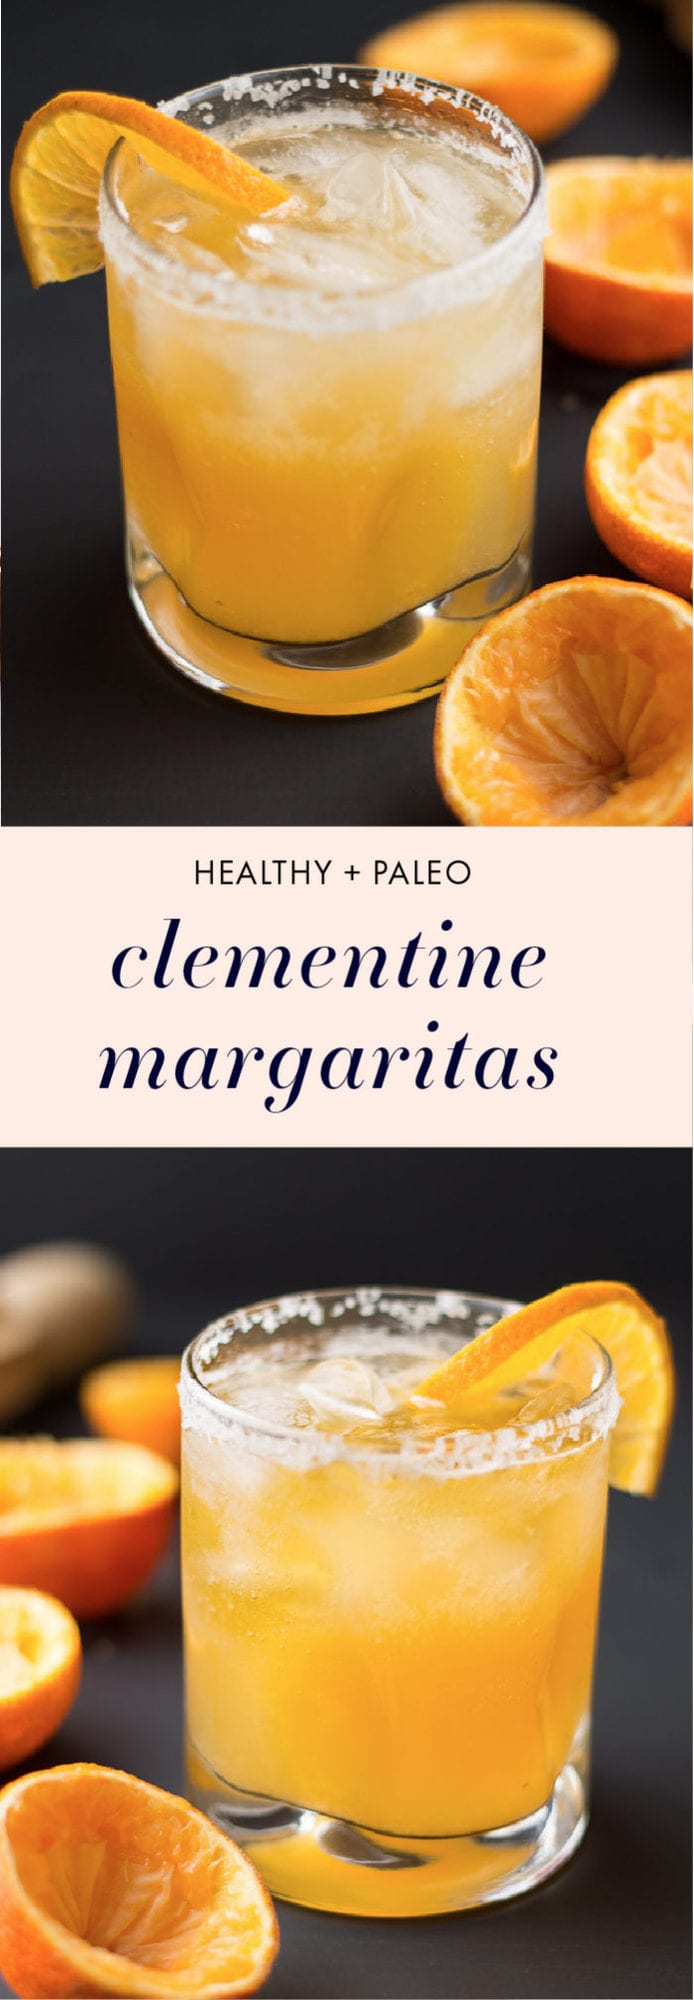 These clementine healthy margaritas are a fantastic way to use up the abundance of citrus. Depending on the sweetness of your clementines, you might not need any sweetener at all - the perfect healthy margaritas recipe for Cinco de Mayo or any fiesta occasion!